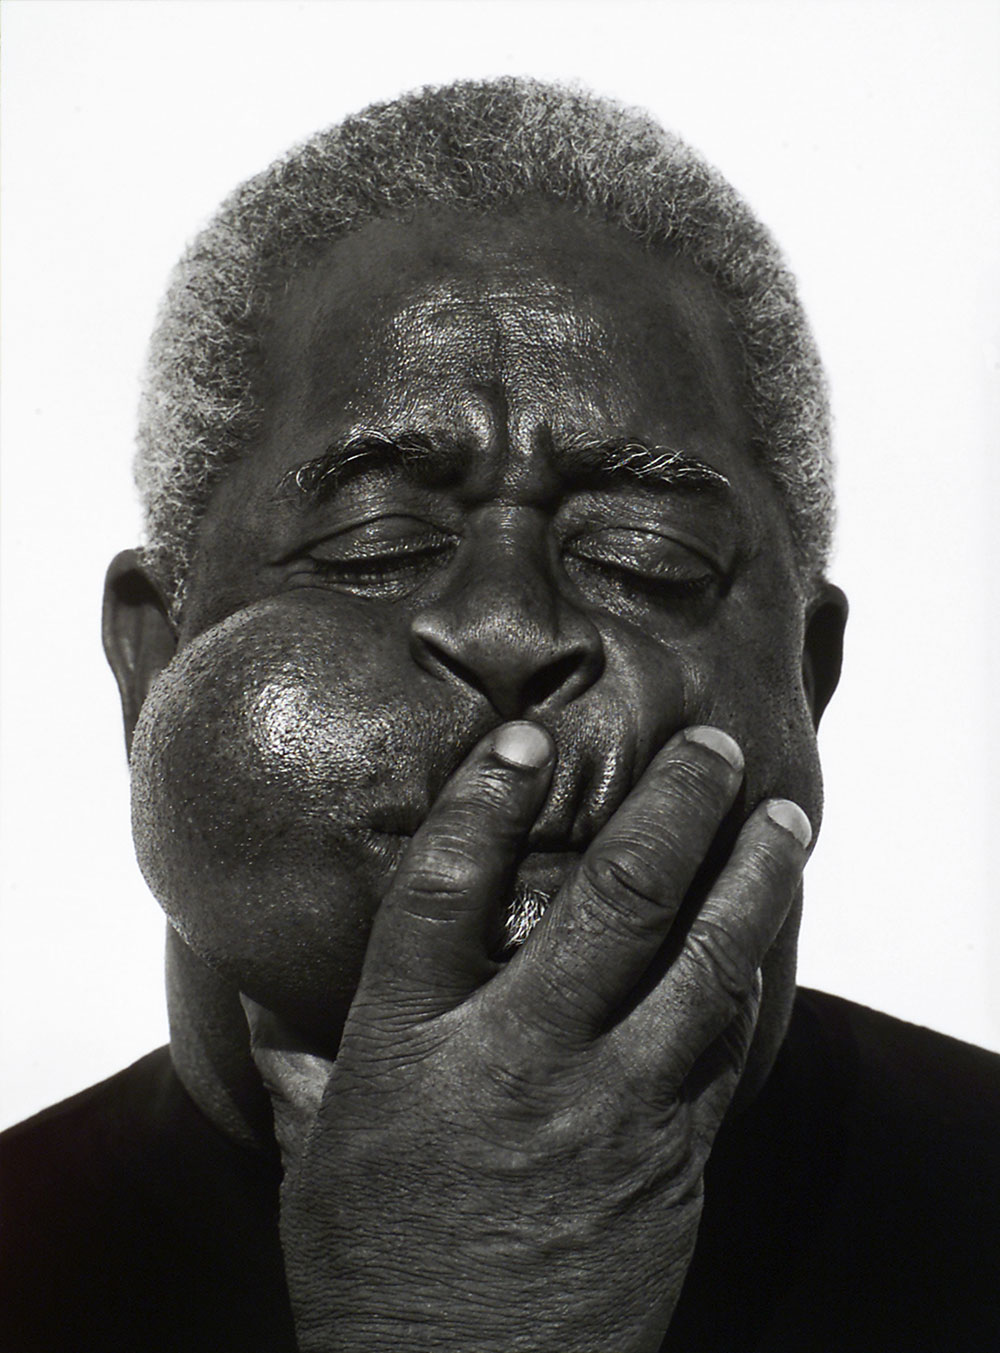 Herb Ritts  (American, 1952-2002)  Dizzy Gillespie, Paris   1989 Gelatin silver print Museum of Fine Arts, Boston Gift of Herb Ritts © Herb Ritts Foundation Photograph © Museum of Fine Arts, Boston